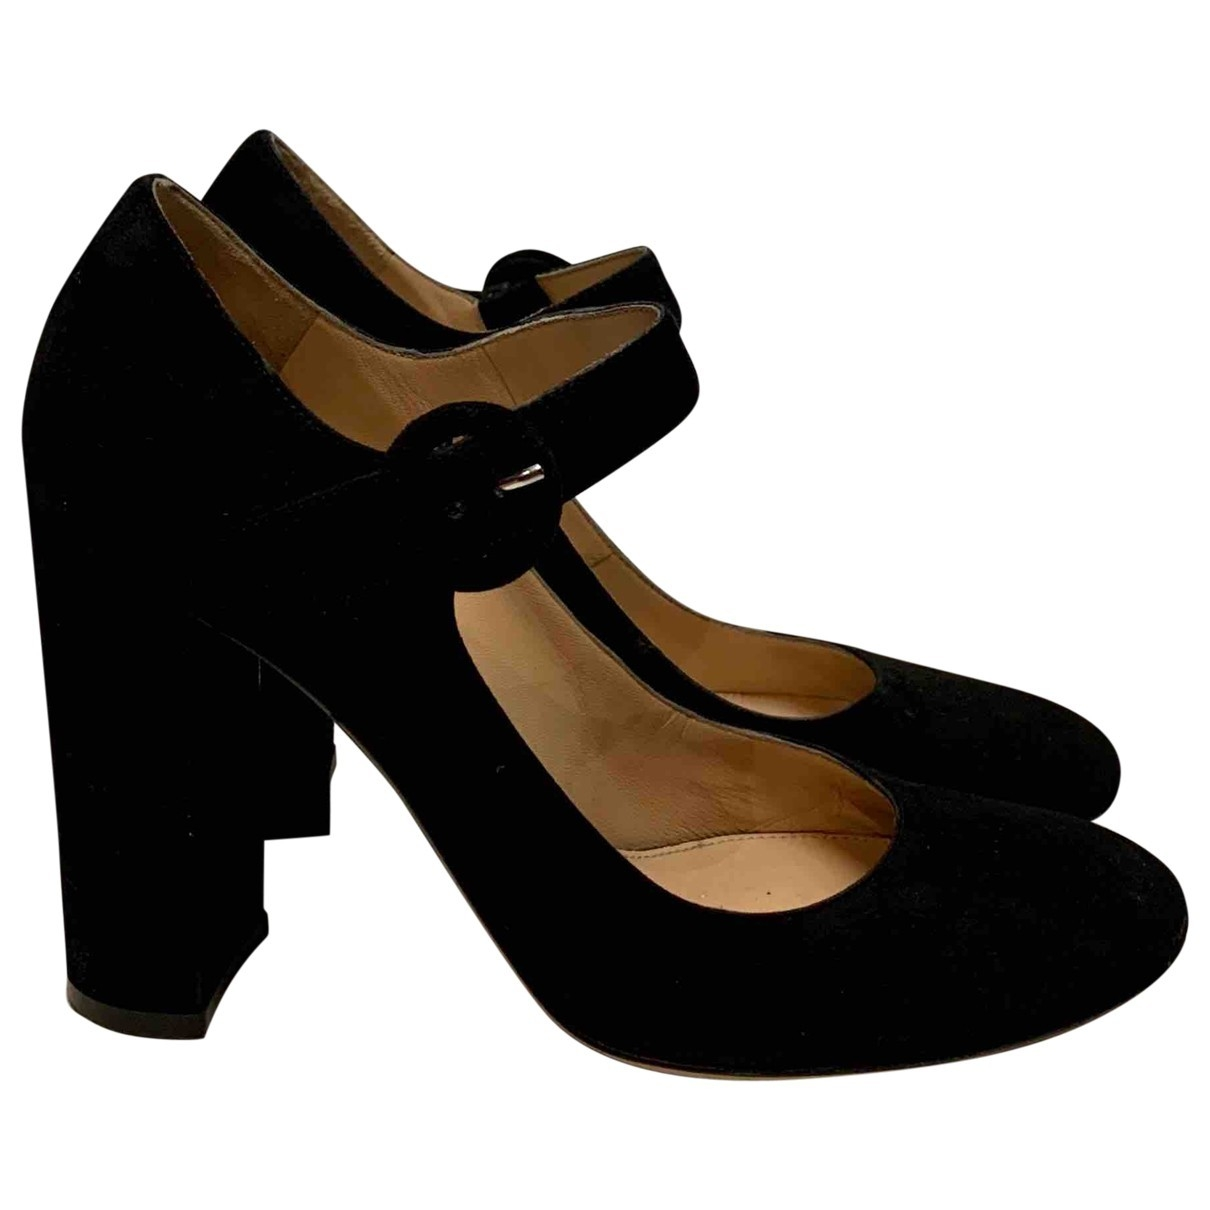 Gianvito Rossi \N Black Suede Heels for Women 38 EU